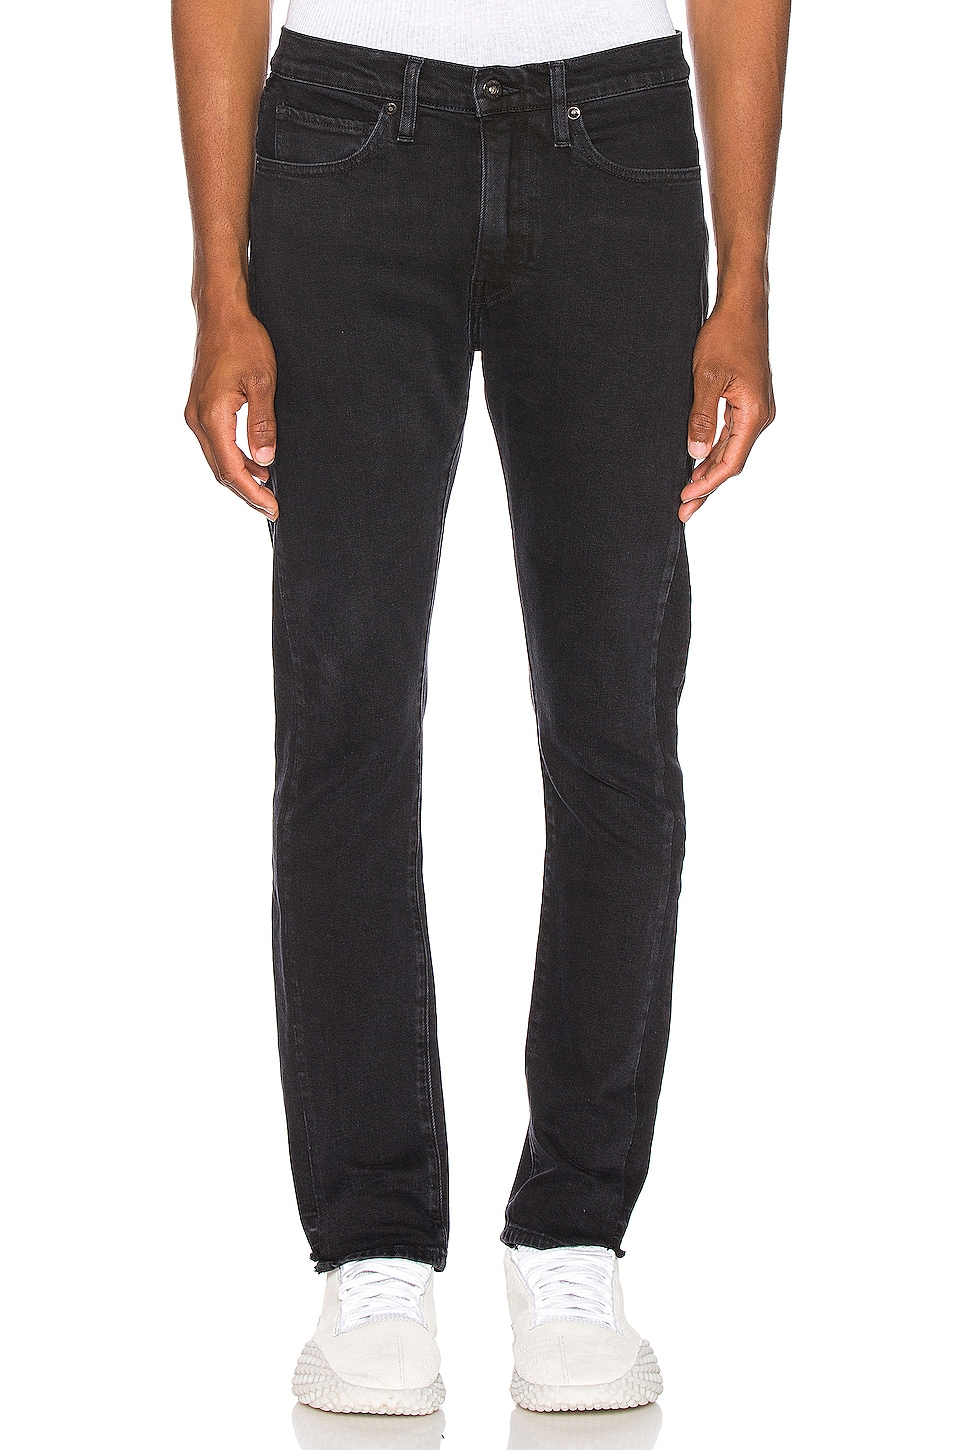 LEVI'S: Made & Crafted 510 Skinny Jean in Pieced Double Black